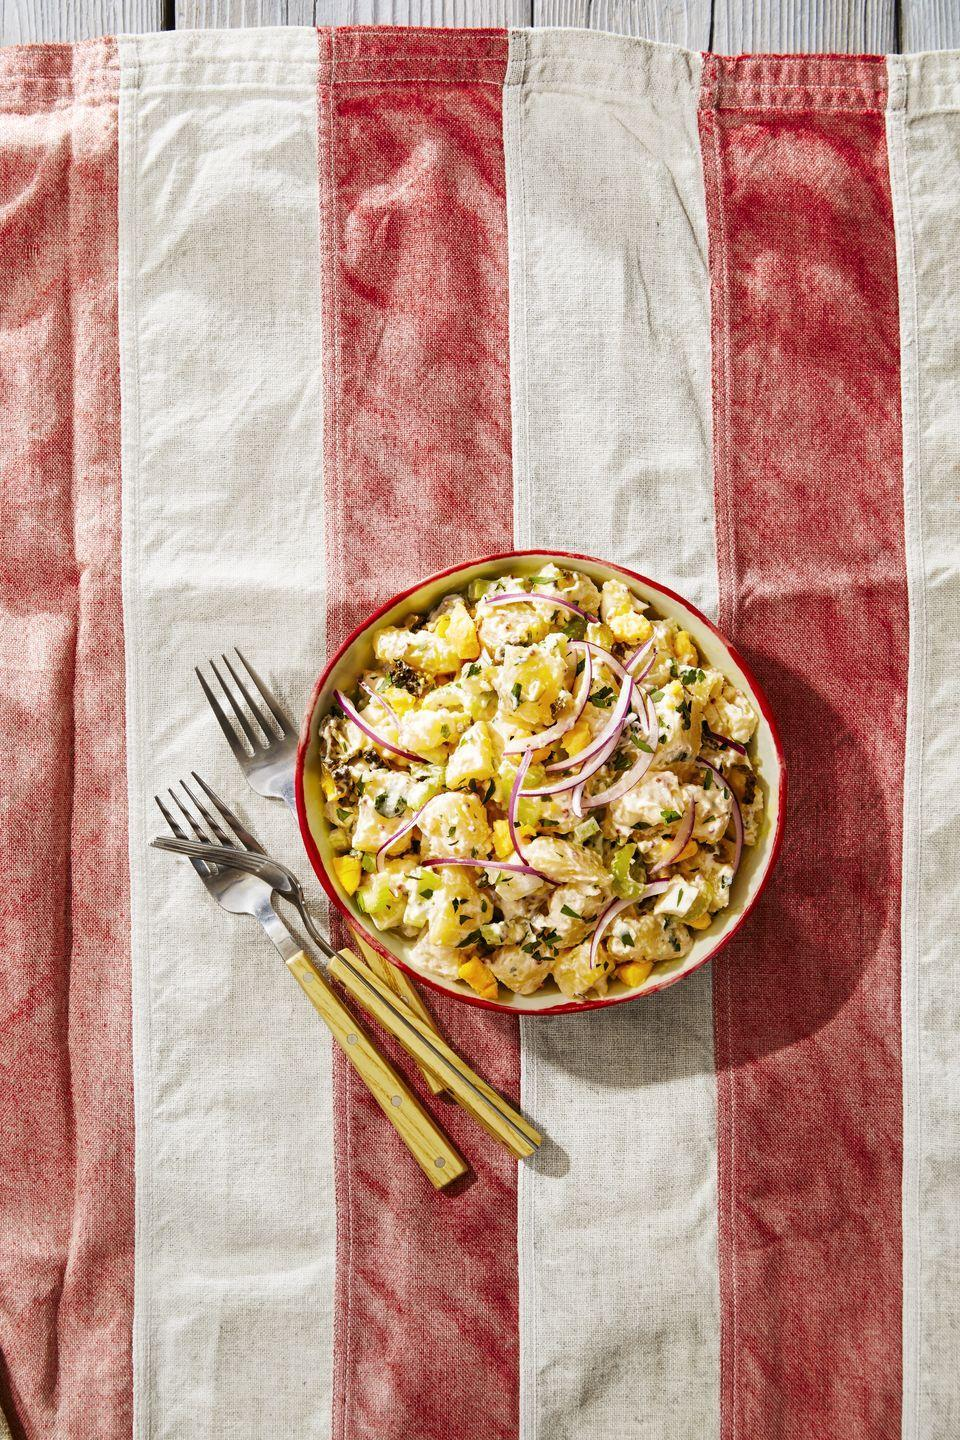 """<p> We lightened up the mayo-laden picnic favorite with yogurt and lots of fresh herbs. Plus, cornichons folded into a BBQ fave add a salty, pickly bite.</p><p><em><a href=""""https://www.goodhousekeeping.com/food-recipes/a39275/parisian-potato-salad-recipe/"""" rel=""""nofollow noopener"""" target=""""_blank"""" data-ylk=""""slk:Get the recipe for Parisian Potato Salad »"""" class=""""link rapid-noclick-resp"""">Get the recipe for Parisian Potato Salad »</a></em></p>"""